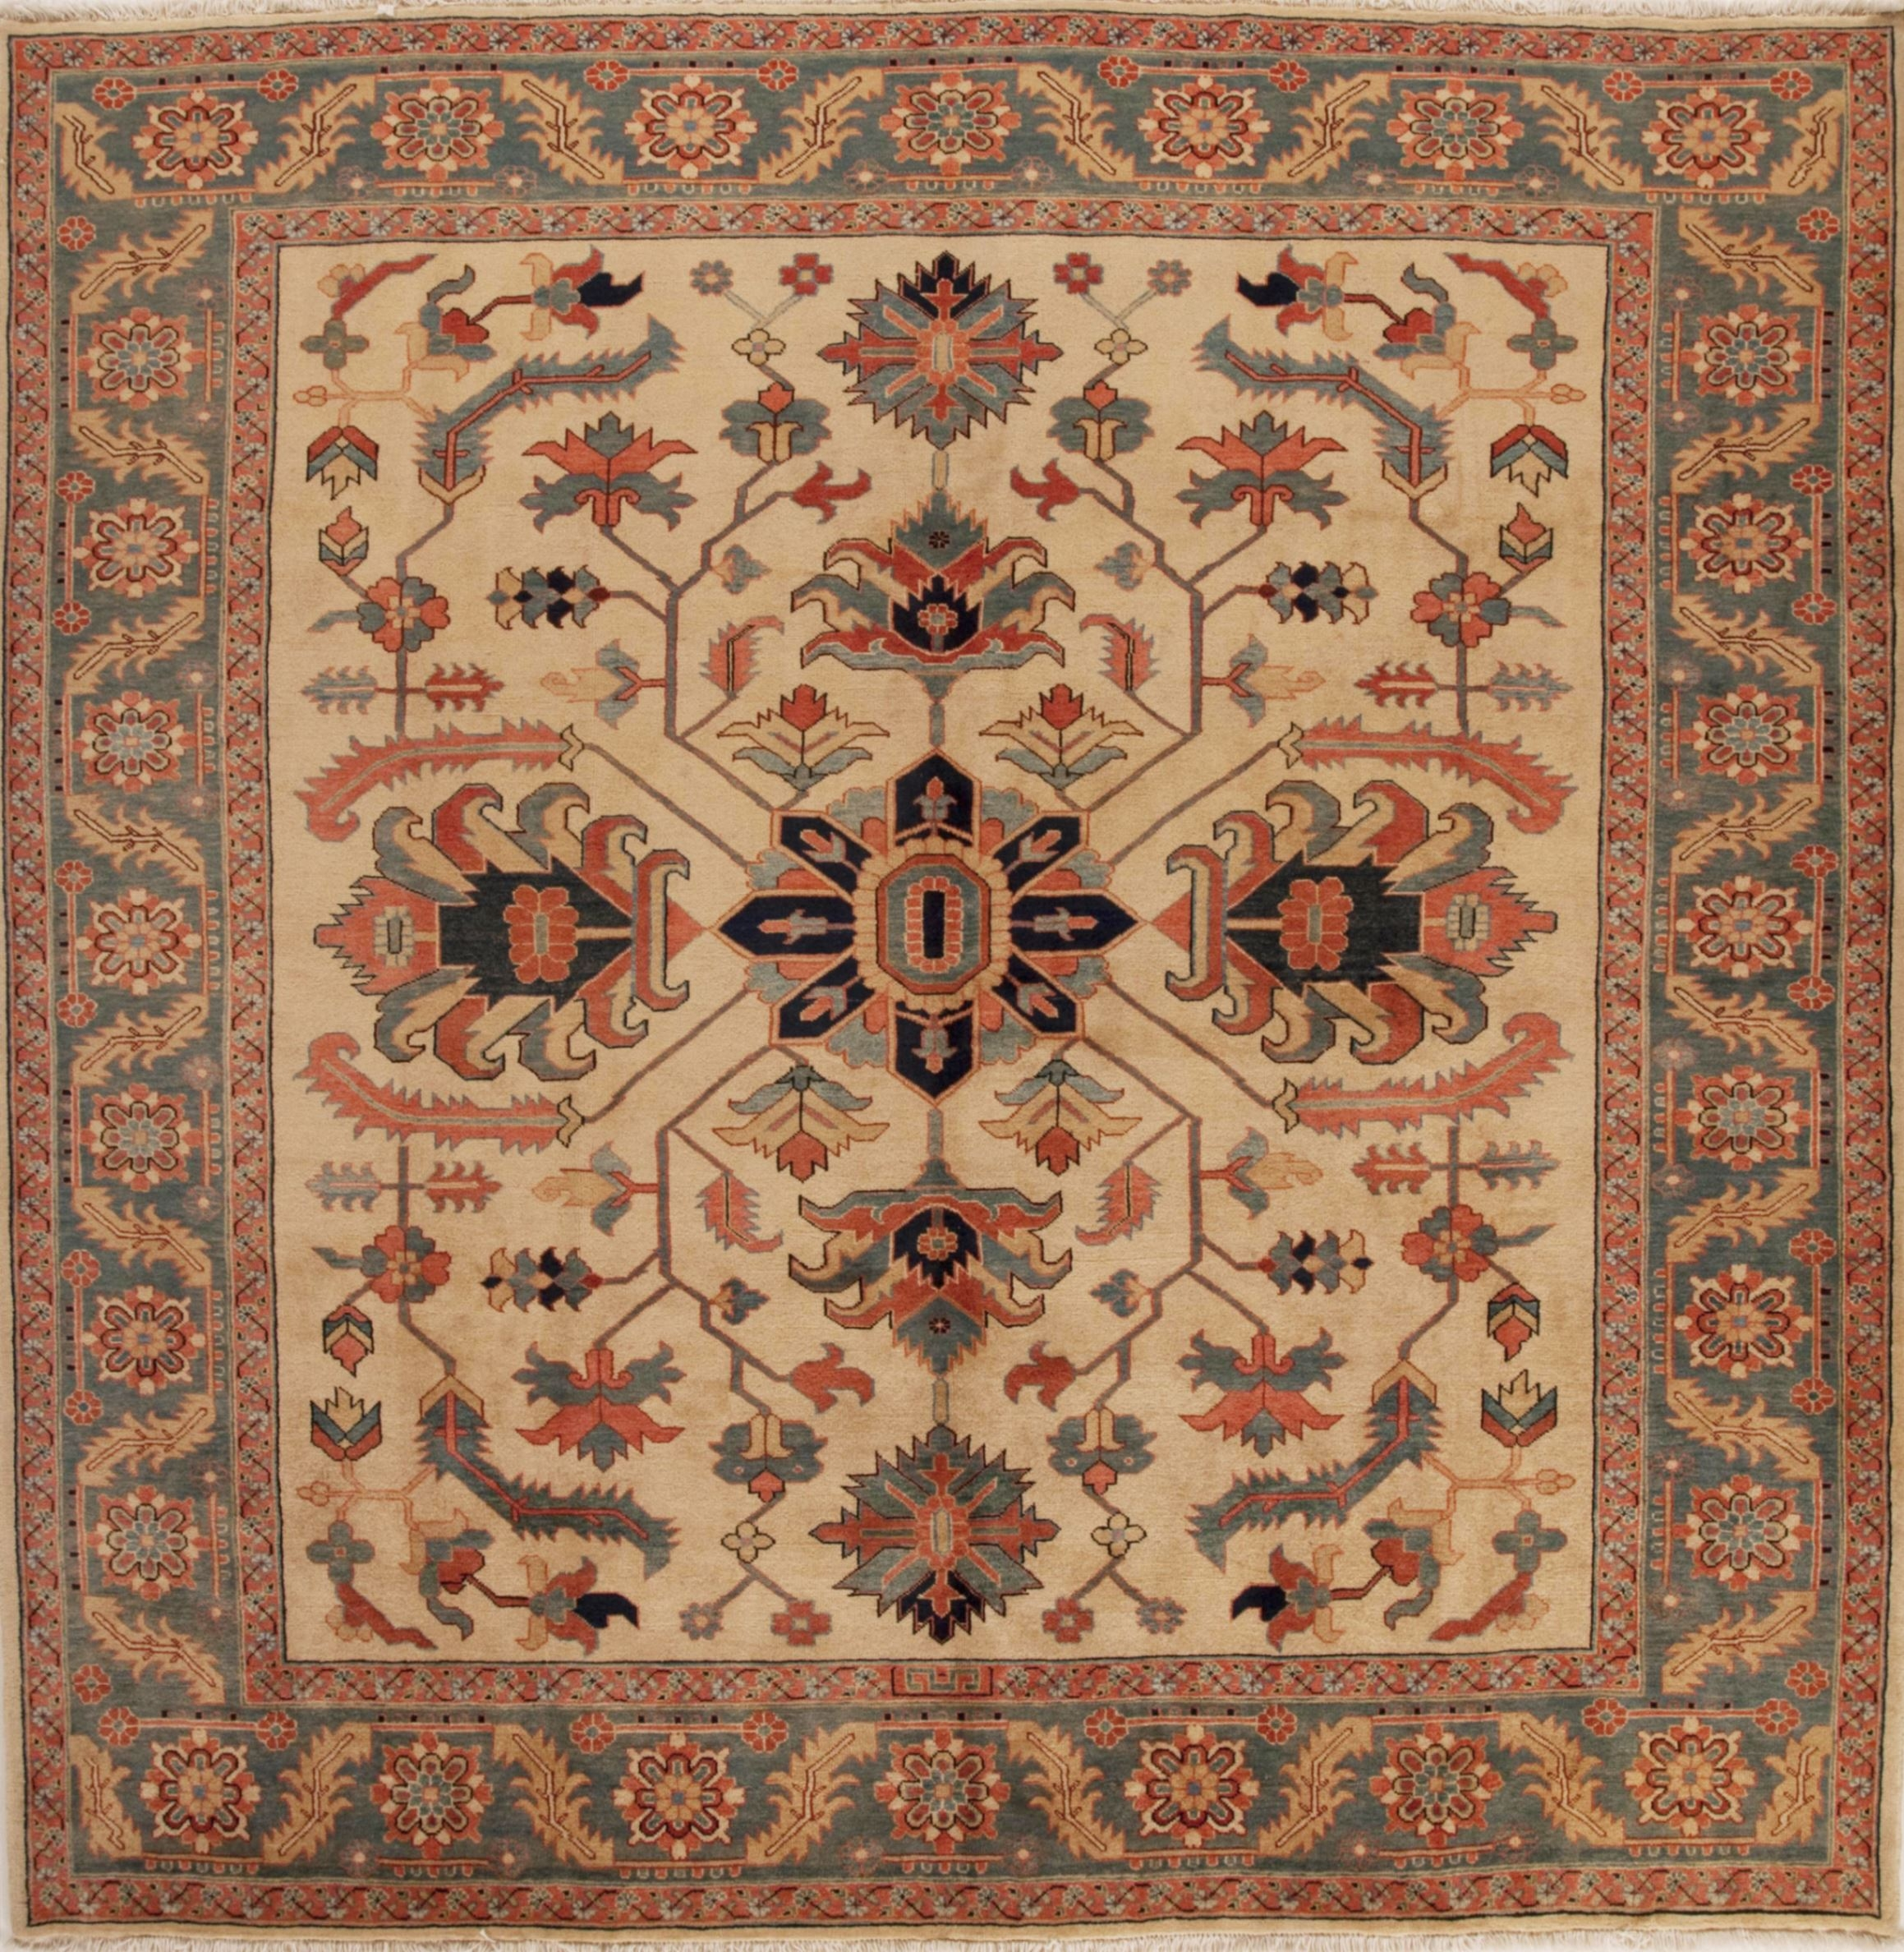 Persian Heriz Beige Square 9 Ft And Larger Wool Carpet 13308 Regarding Square Wool Area Rugs (#5 of 15)